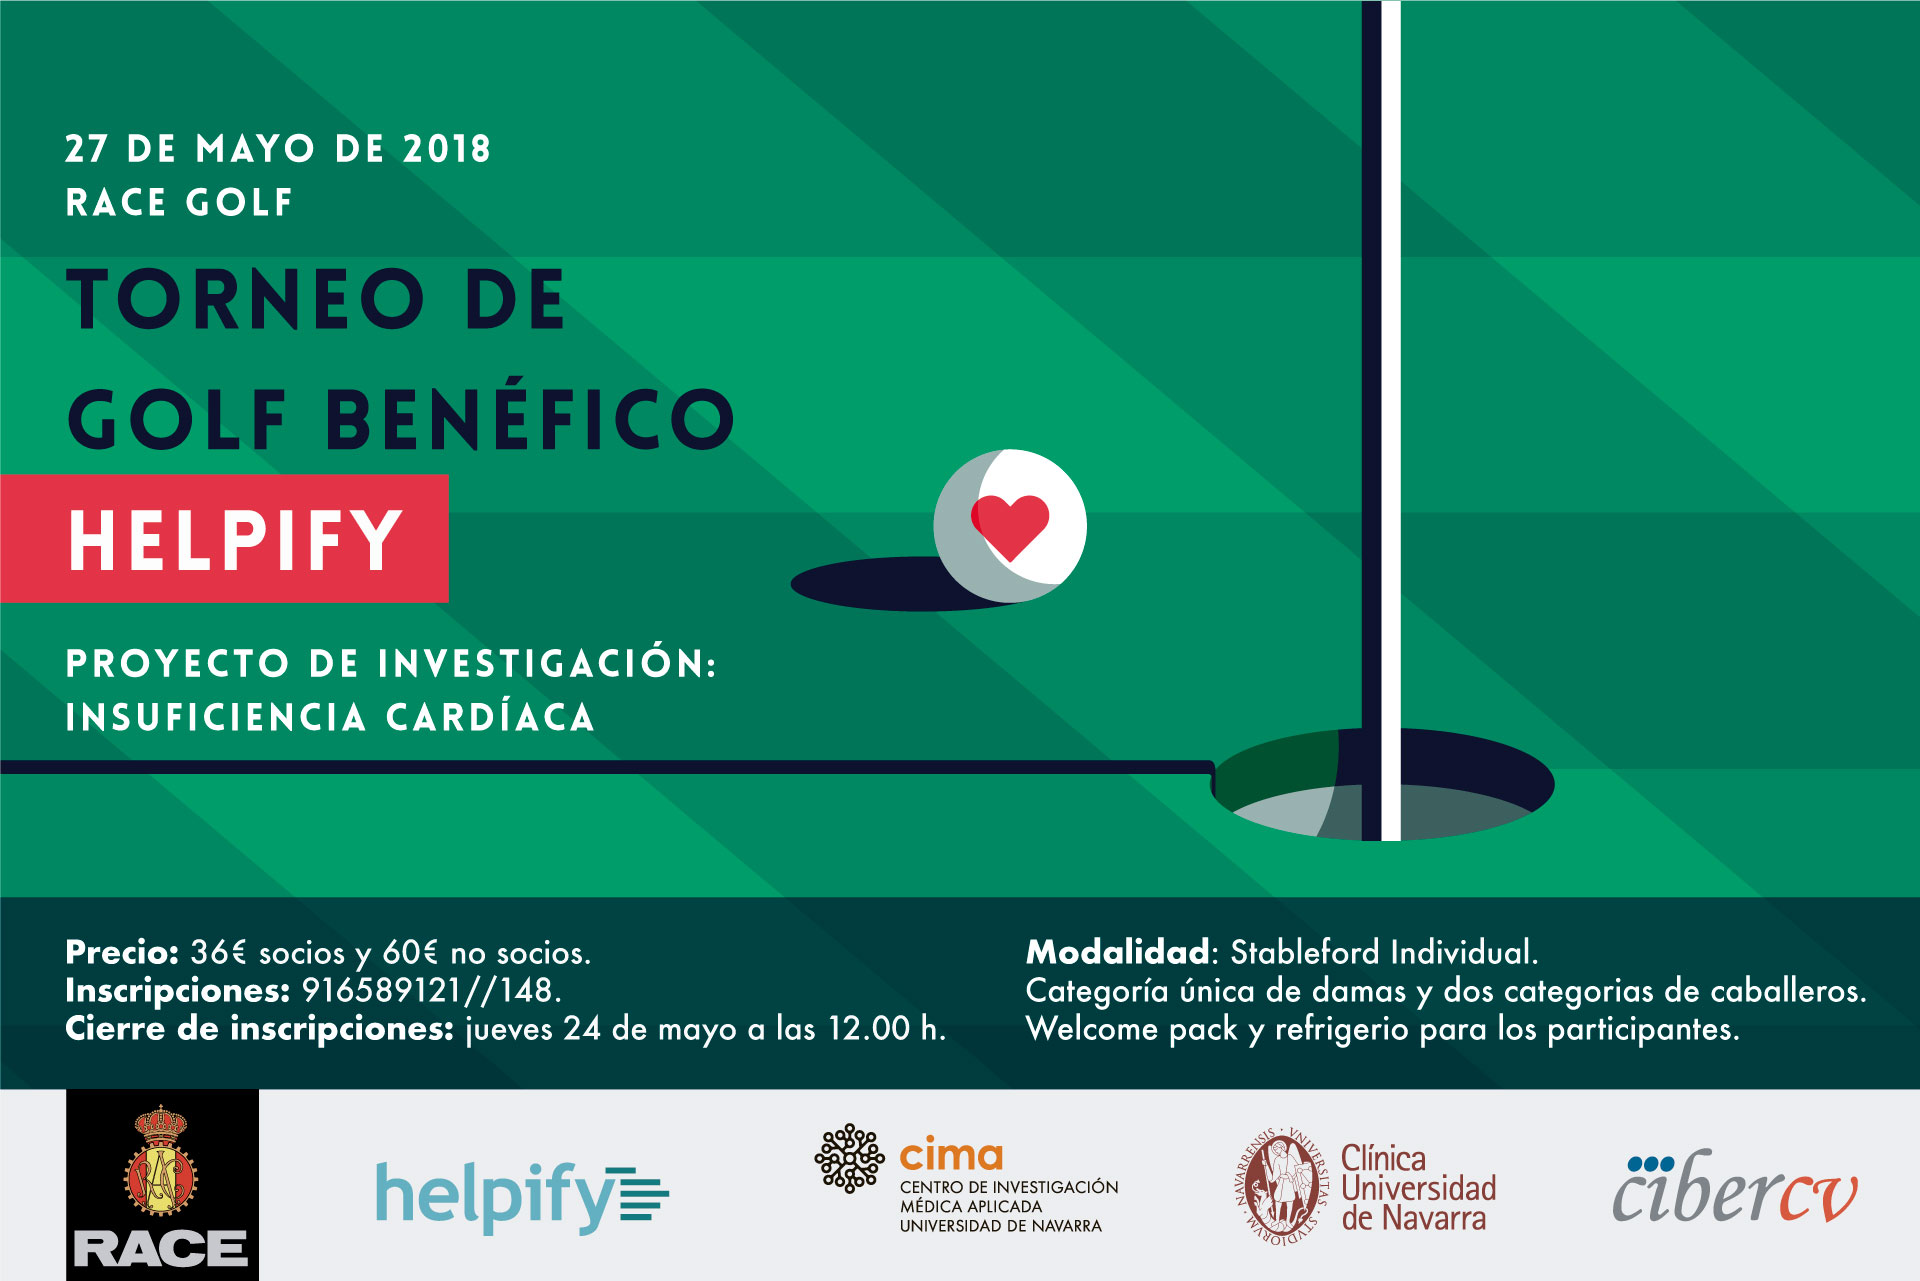 I Torneo de Golf Helpify en el Club Race